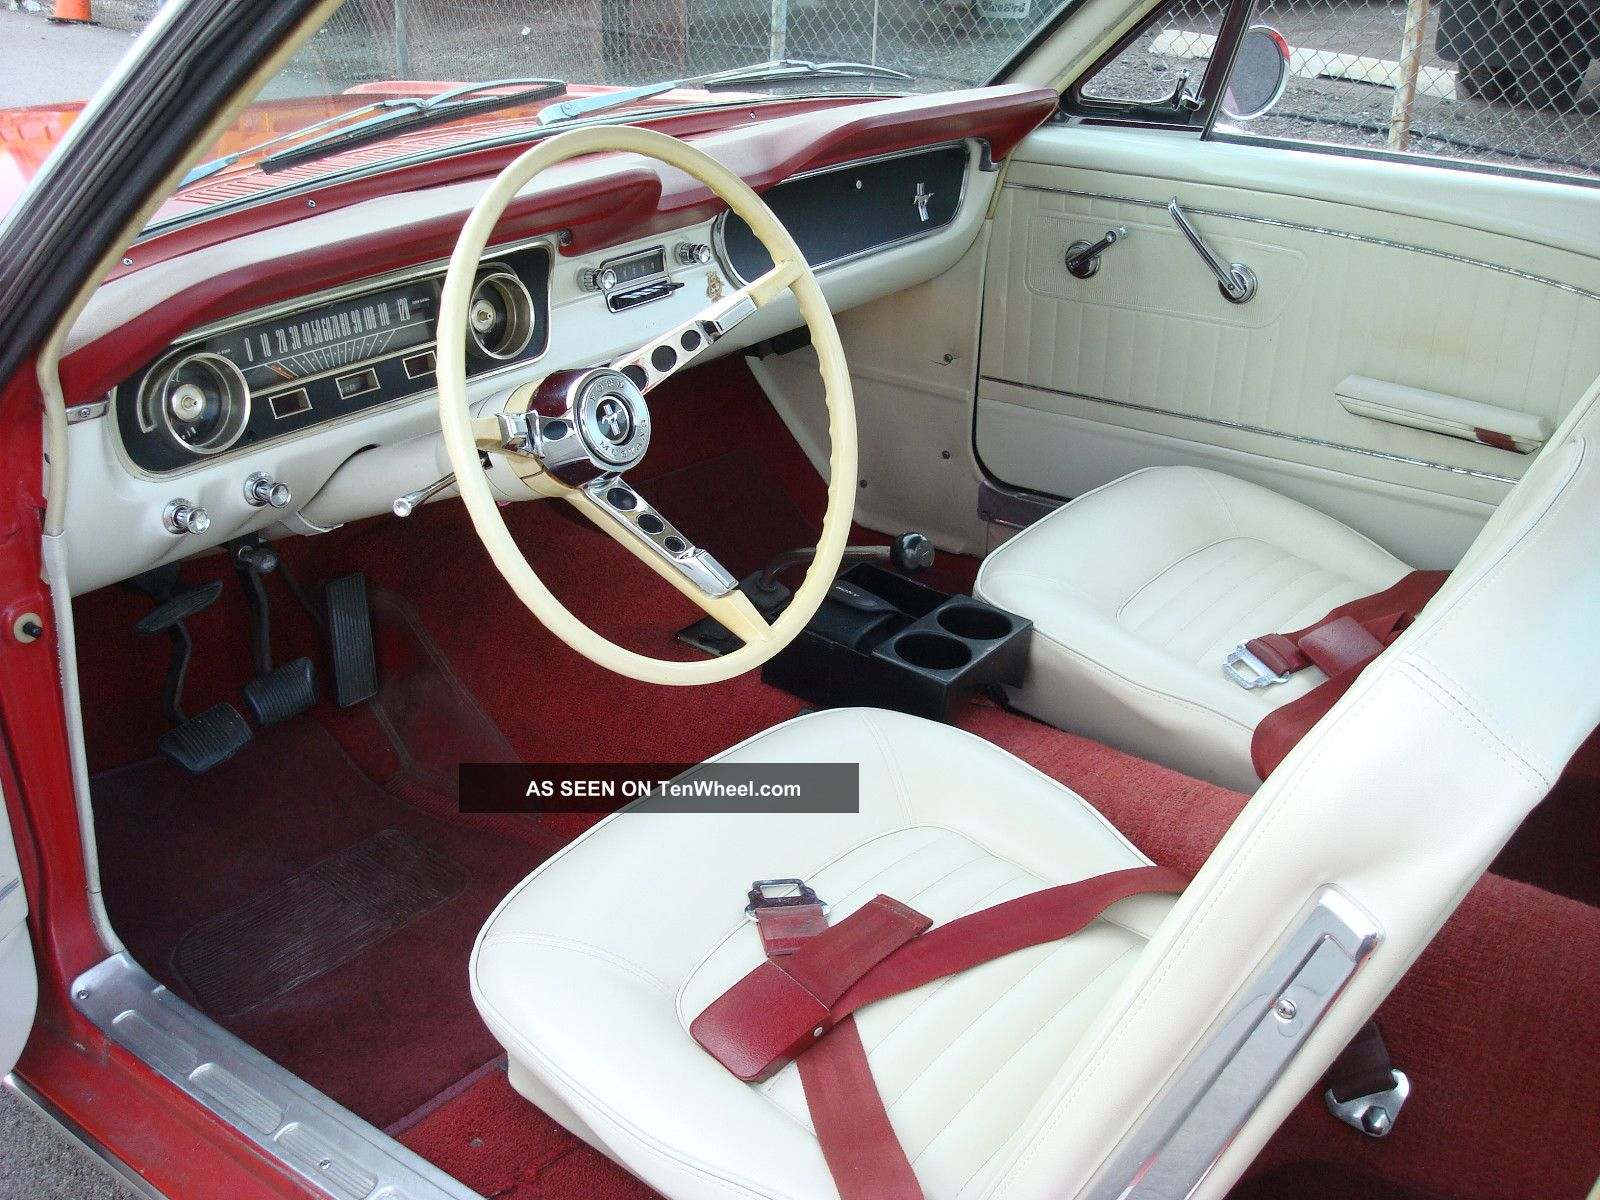 1965 mustang fastback red white interior 2 plus 2 6 cyl 3 speed car low r. Black Bedroom Furniture Sets. Home Design Ideas